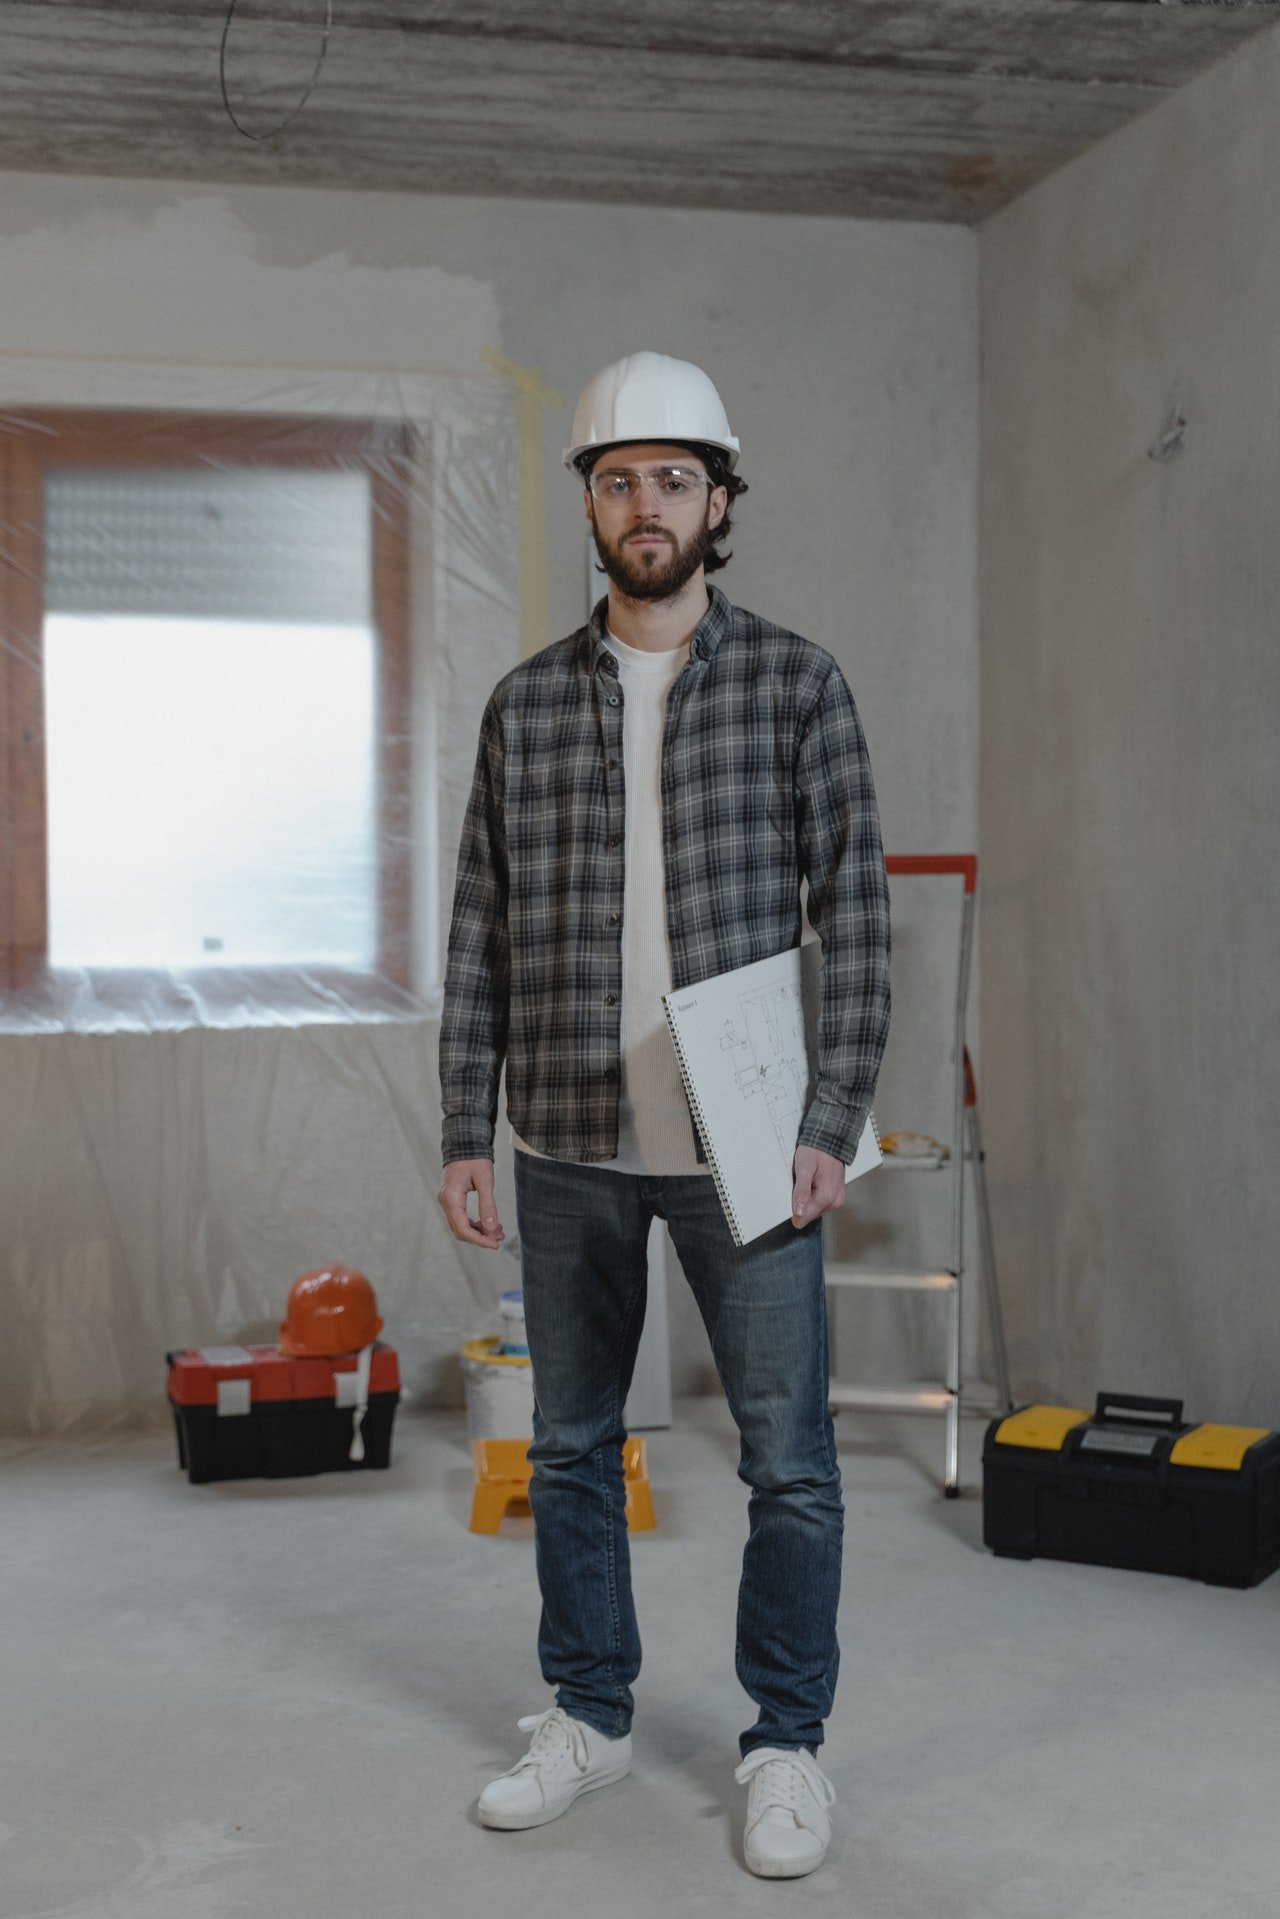 The plumber knocked on the door   Photo: Pexels